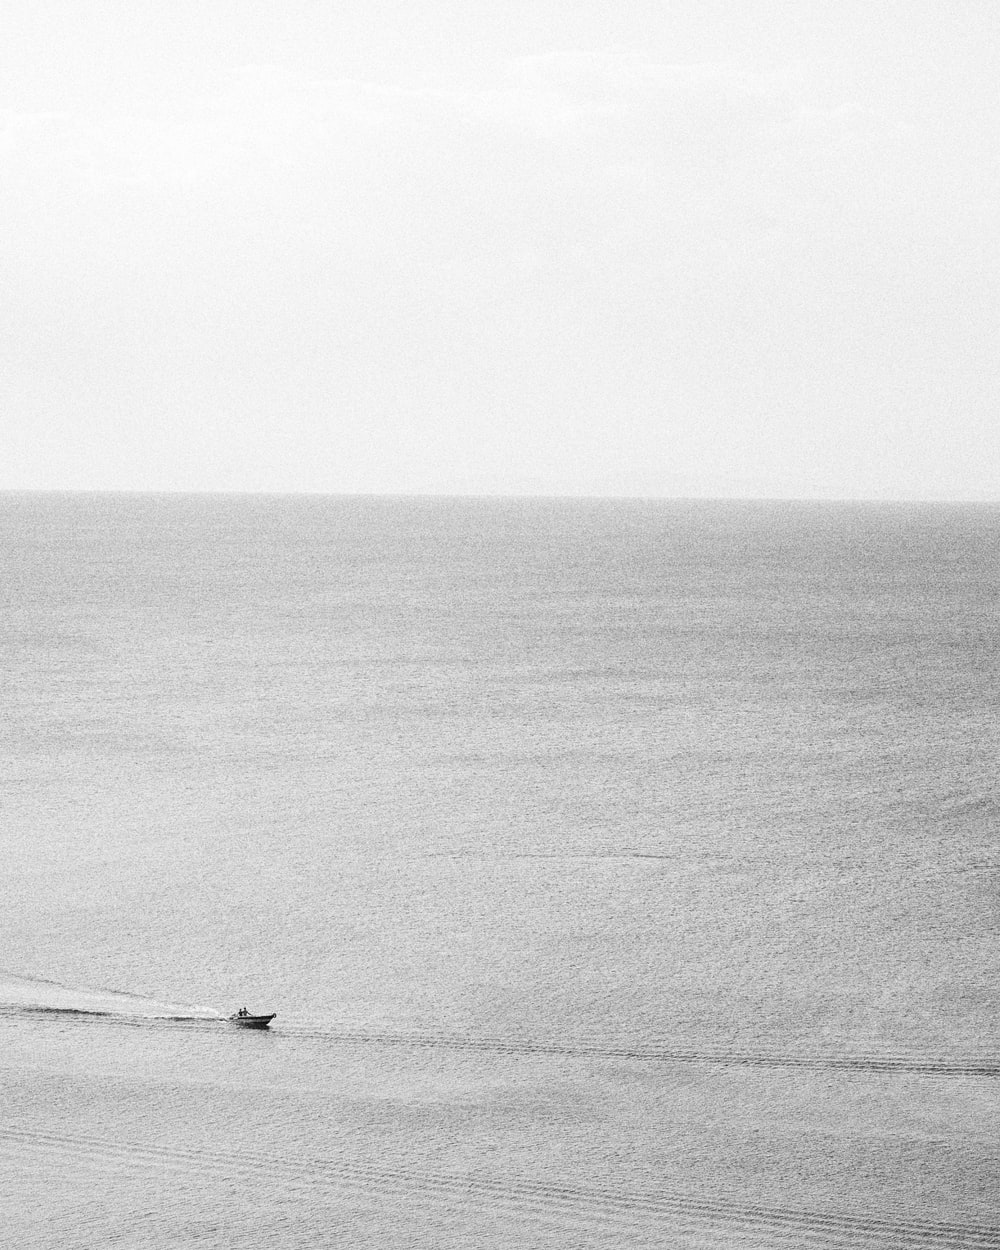 grayscale photo of person in boat on sea